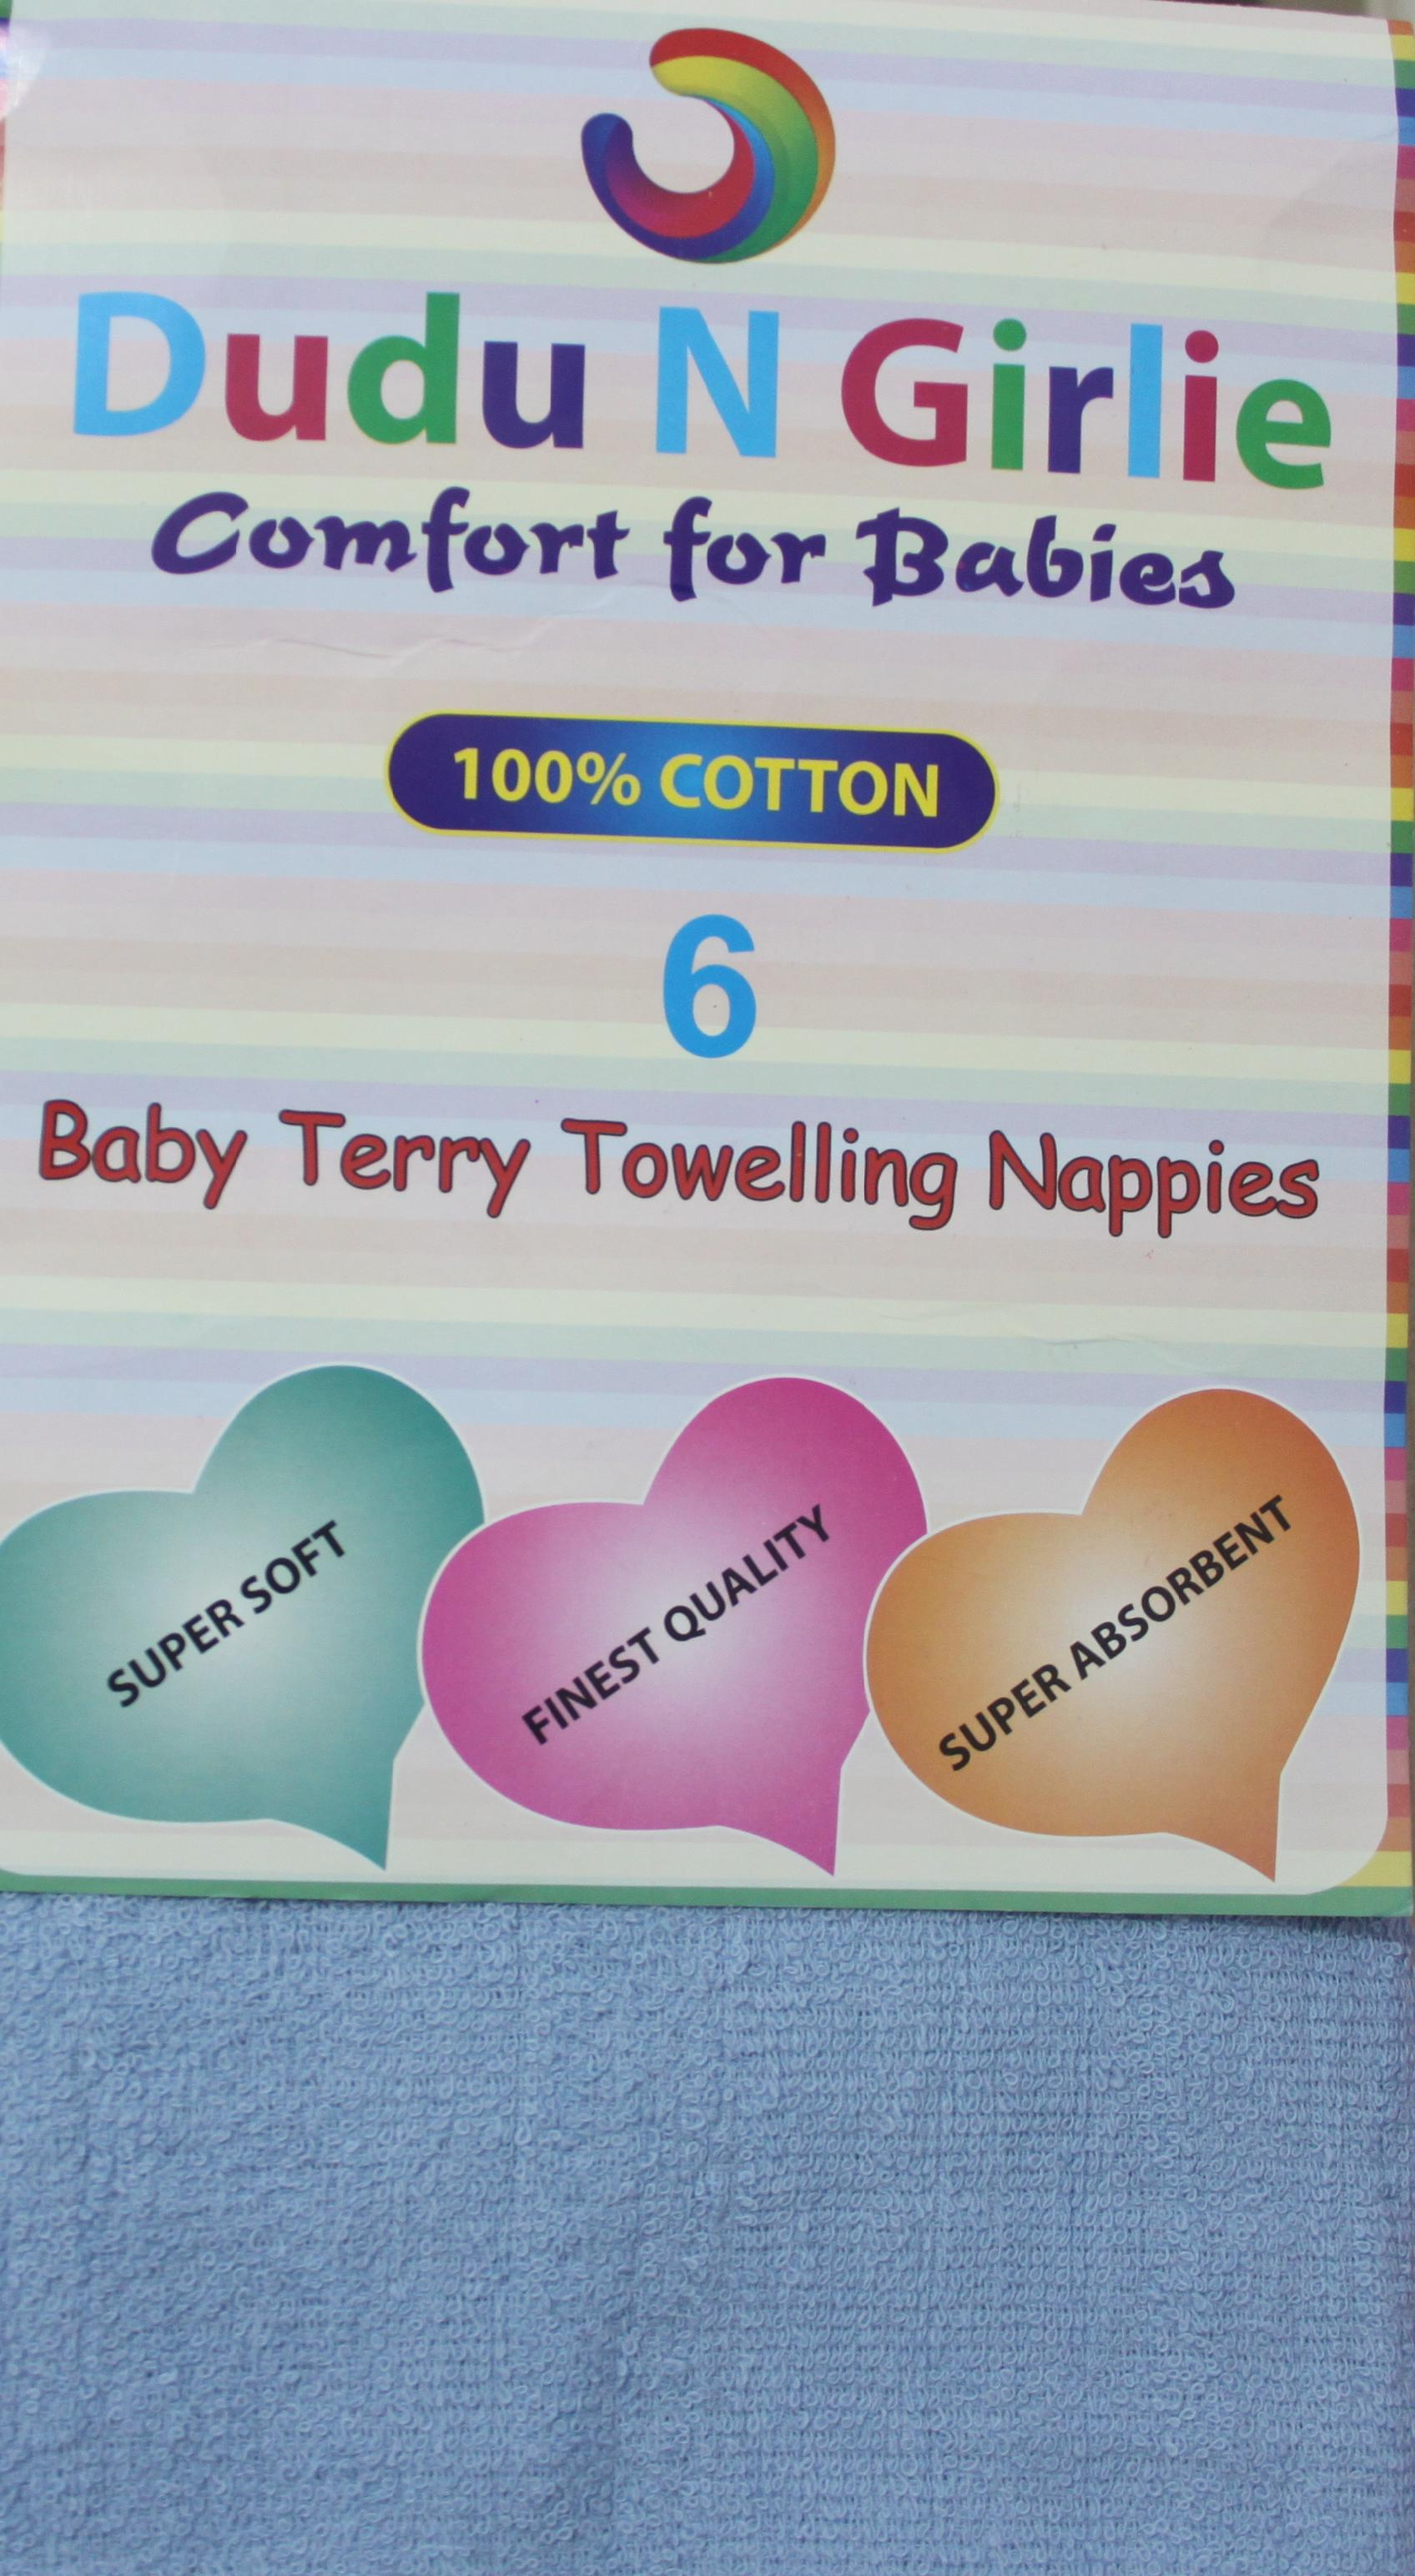 Dudungirlie 174 100 Cotton Terry Towelling Nappies